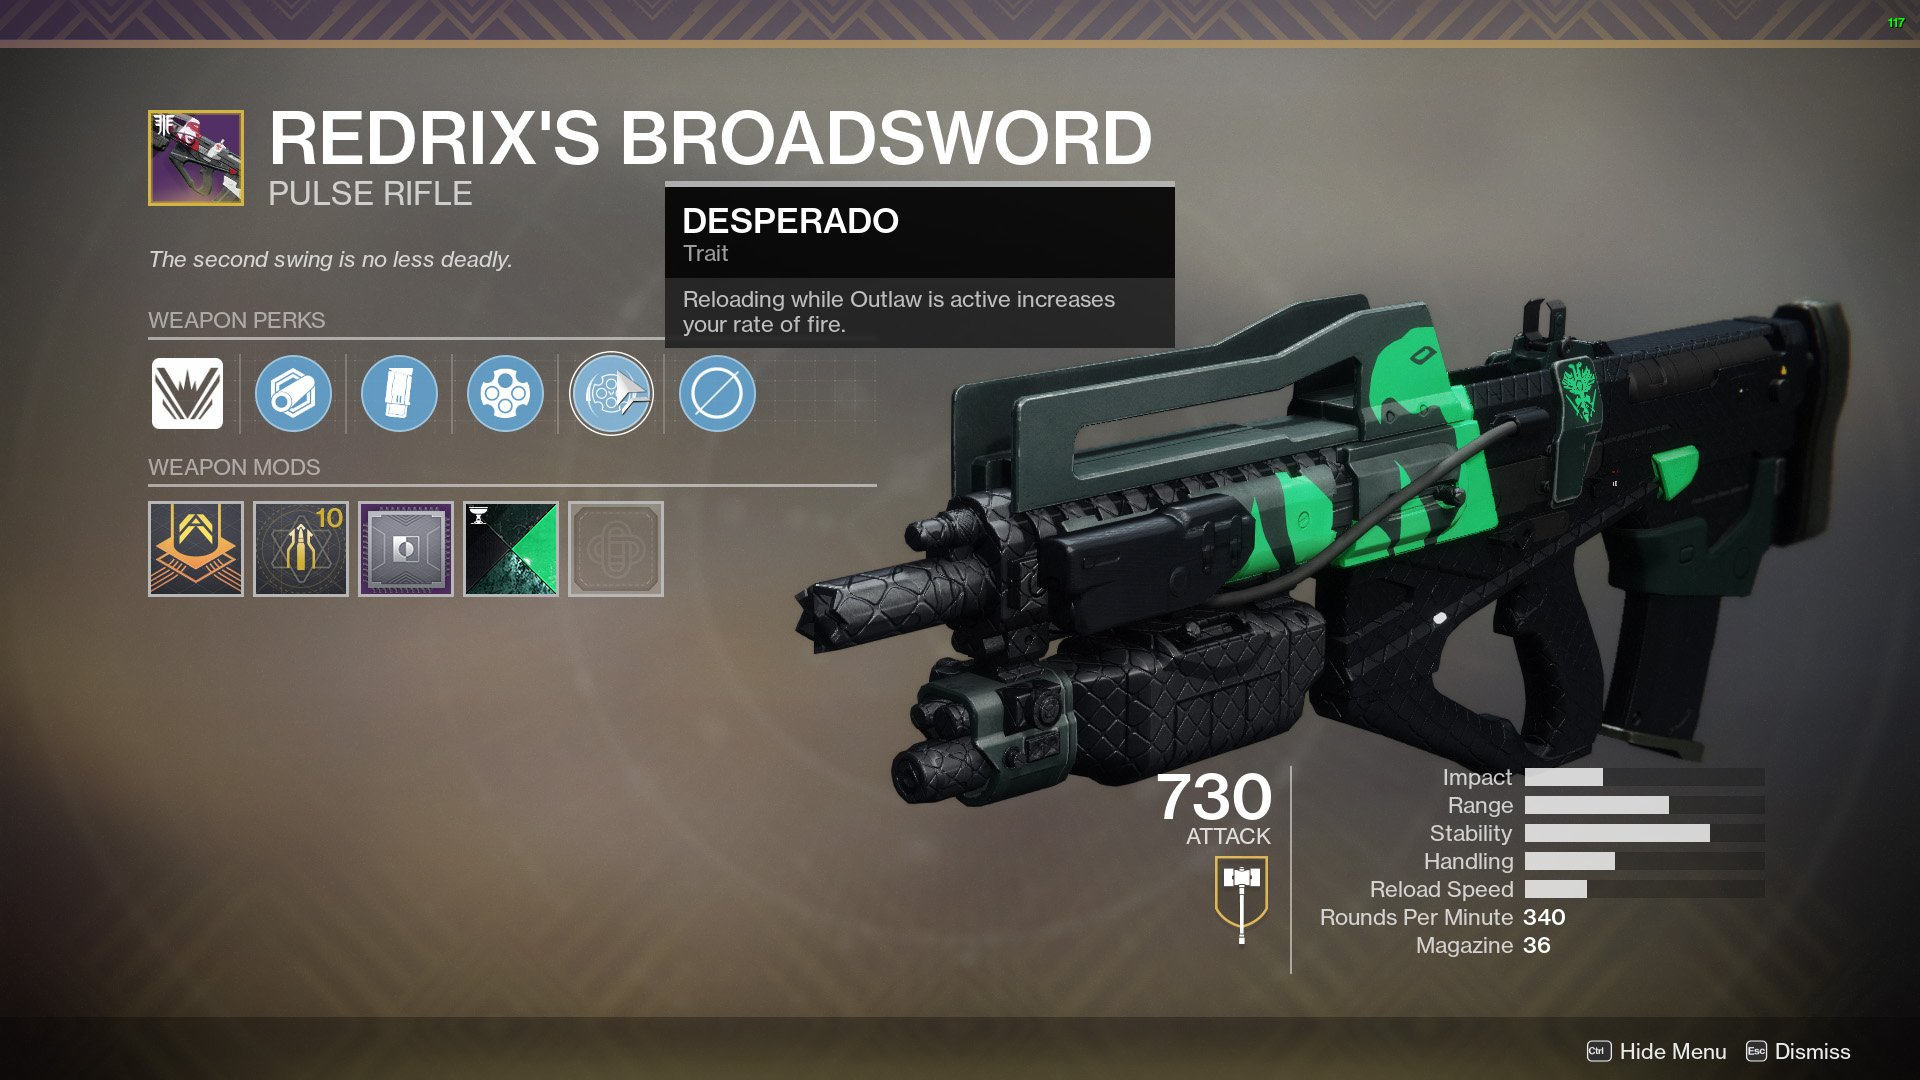 Redrix's Broadsword Destiny 2